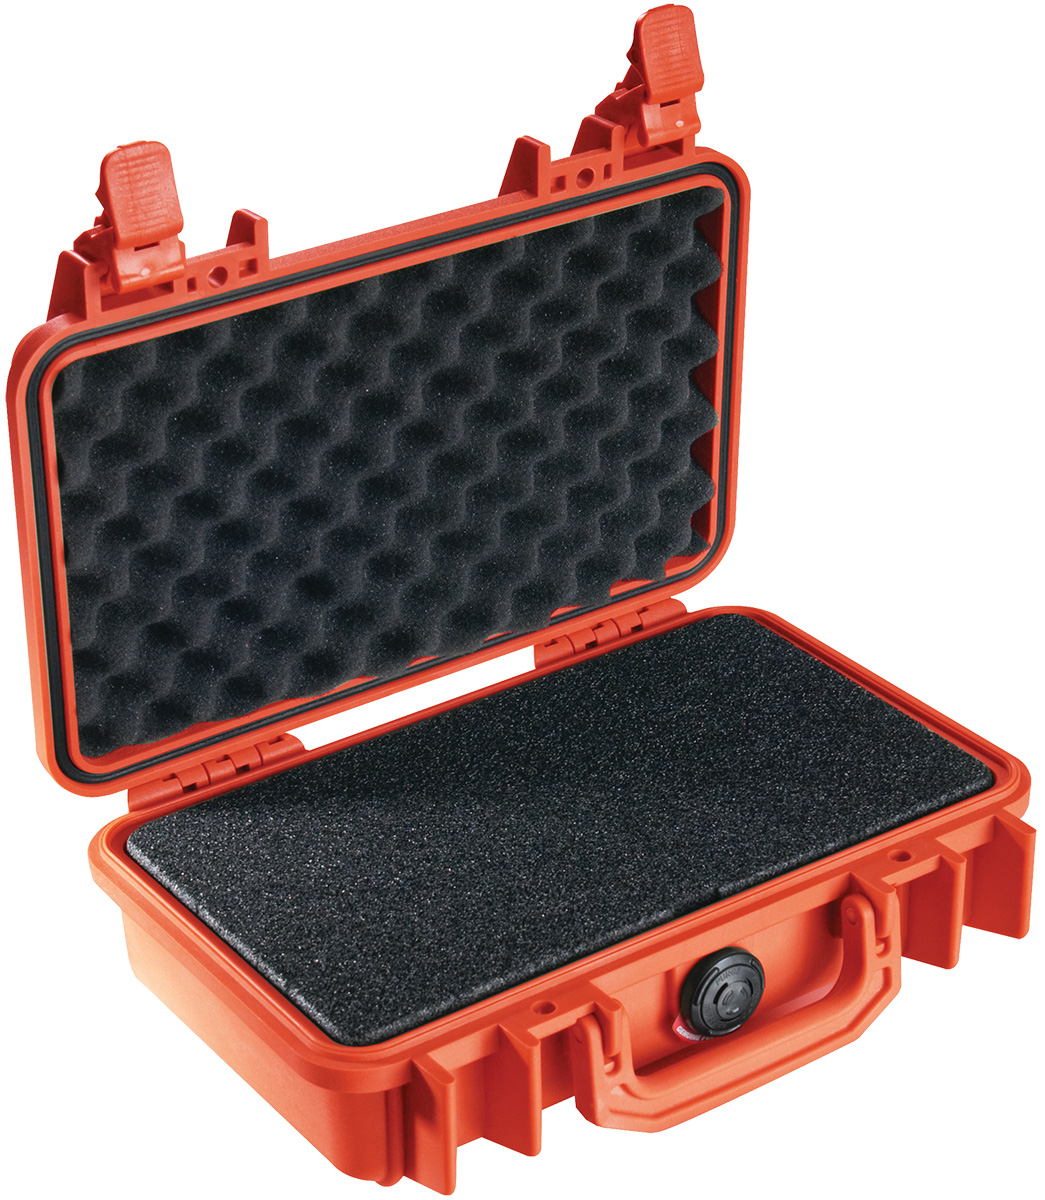 pelican 1170 orange foam pistol case